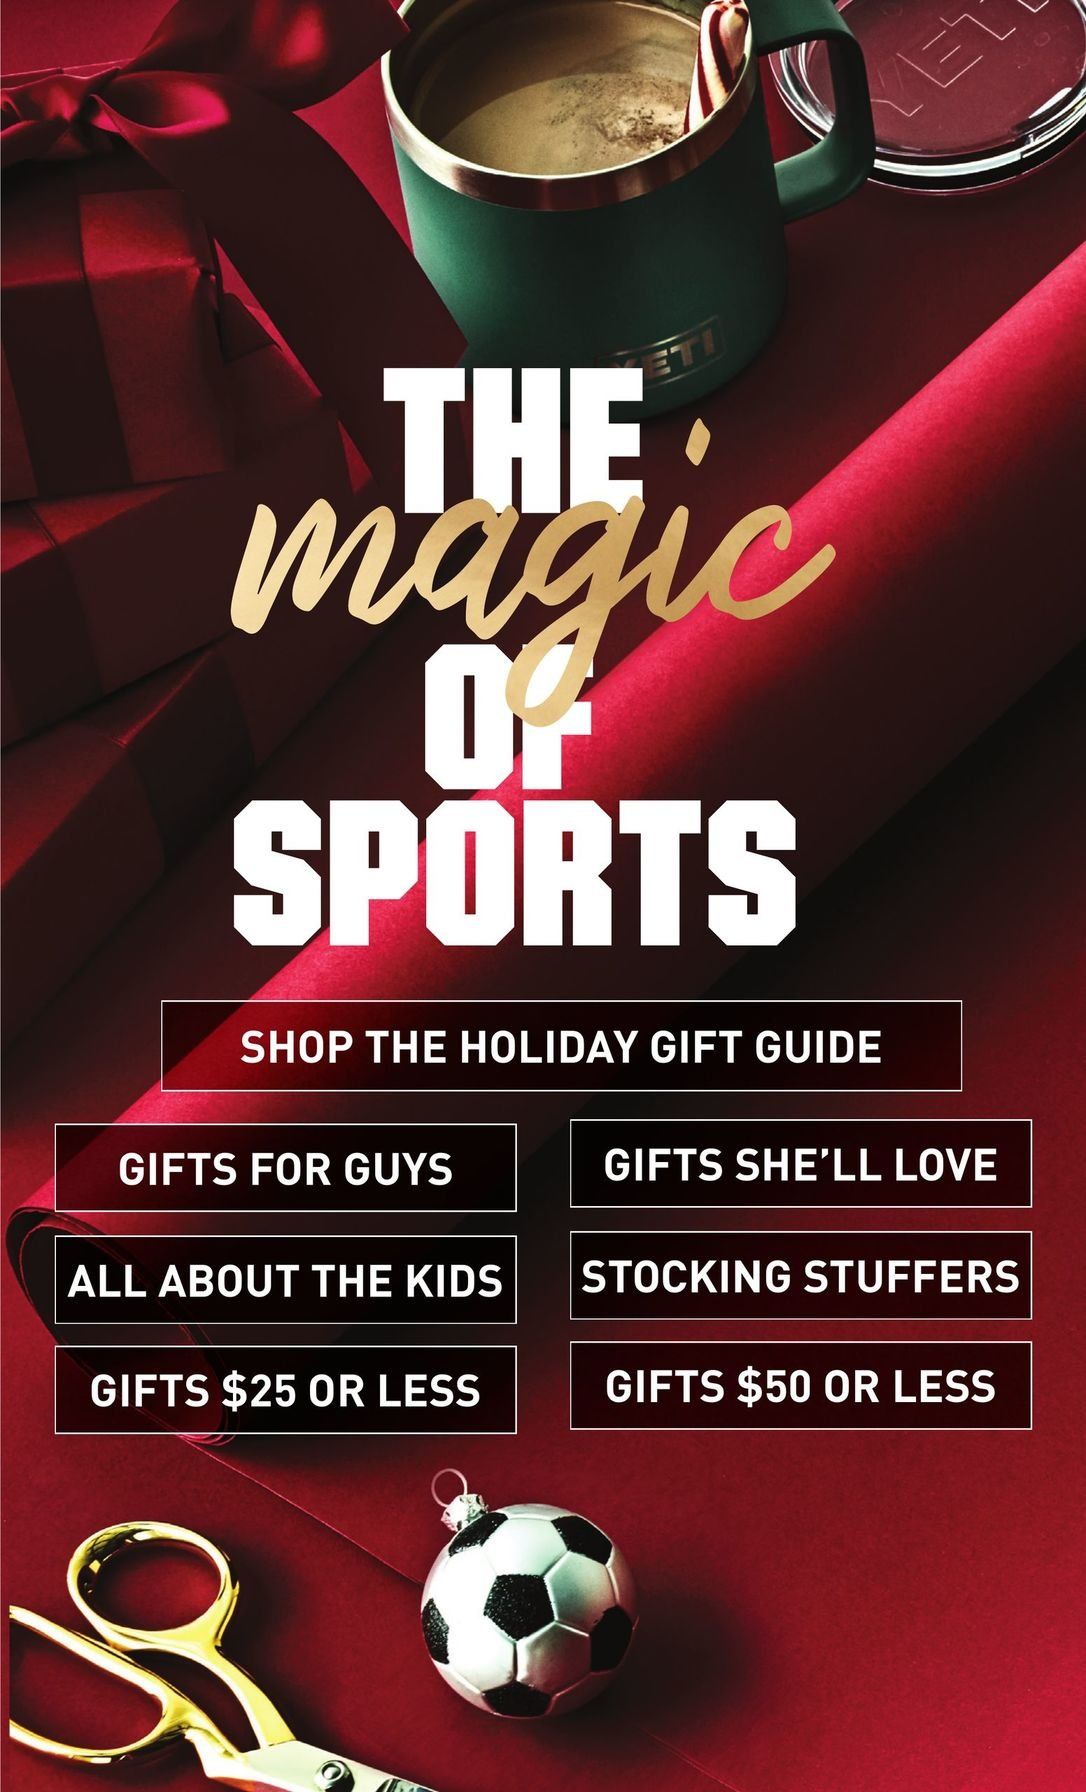 Dick's Sporting Goods Black Friday 2020 Page 11